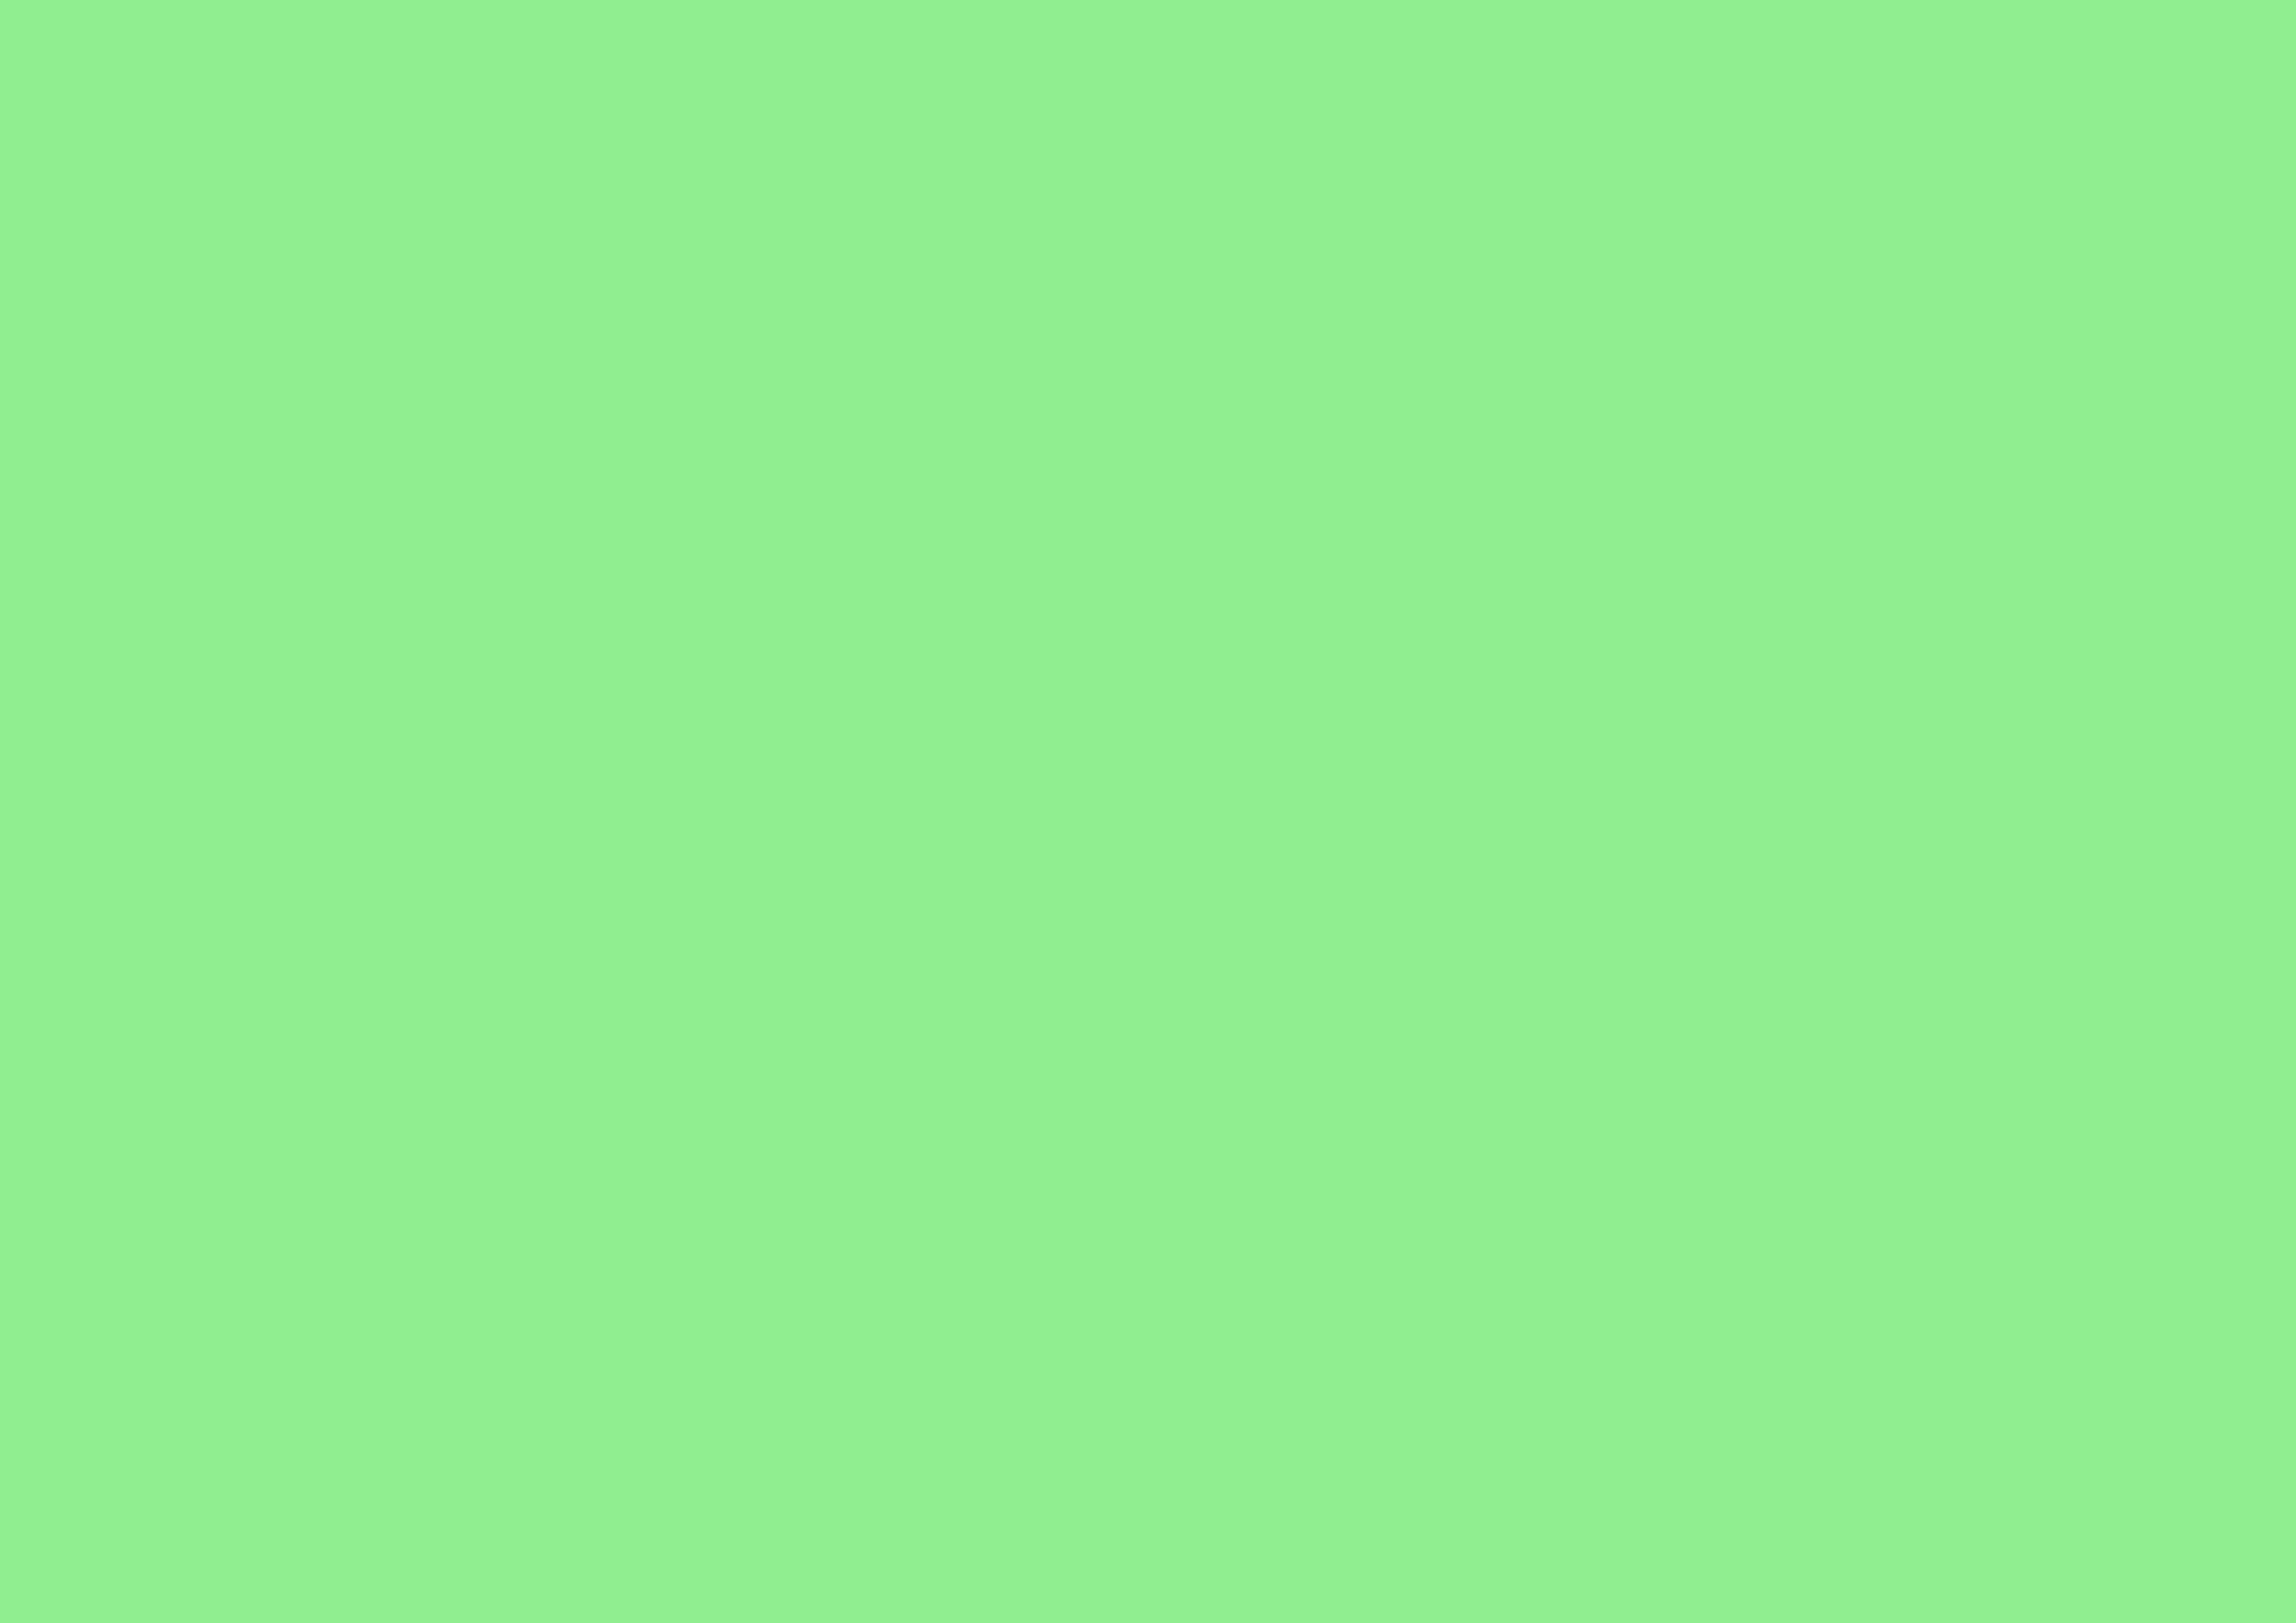 3508x2480 Light Green Solid Color Background